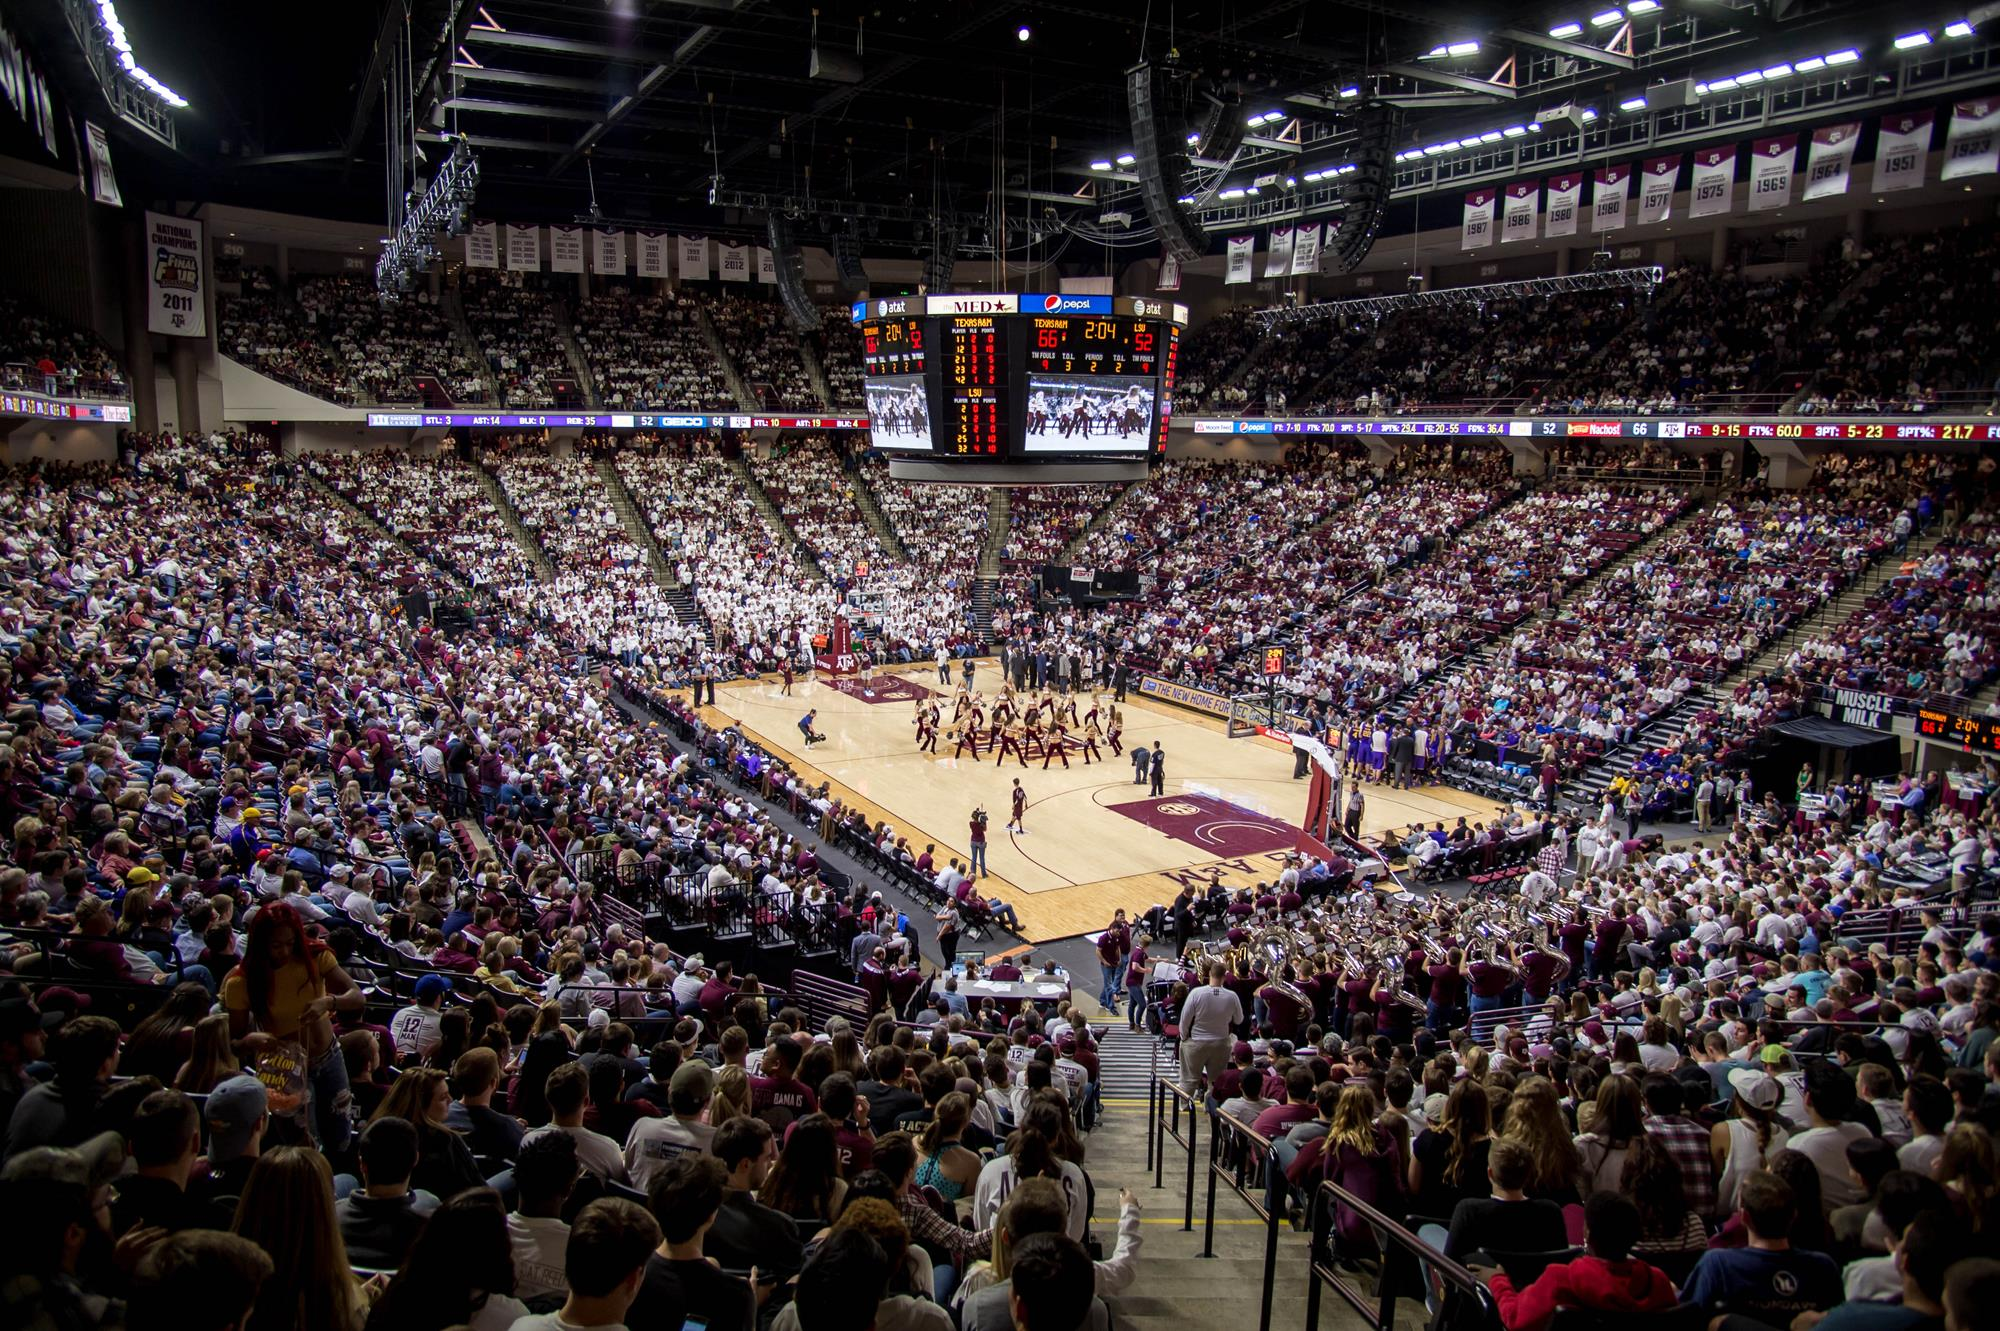 reed arena - facilities - texas a&m university